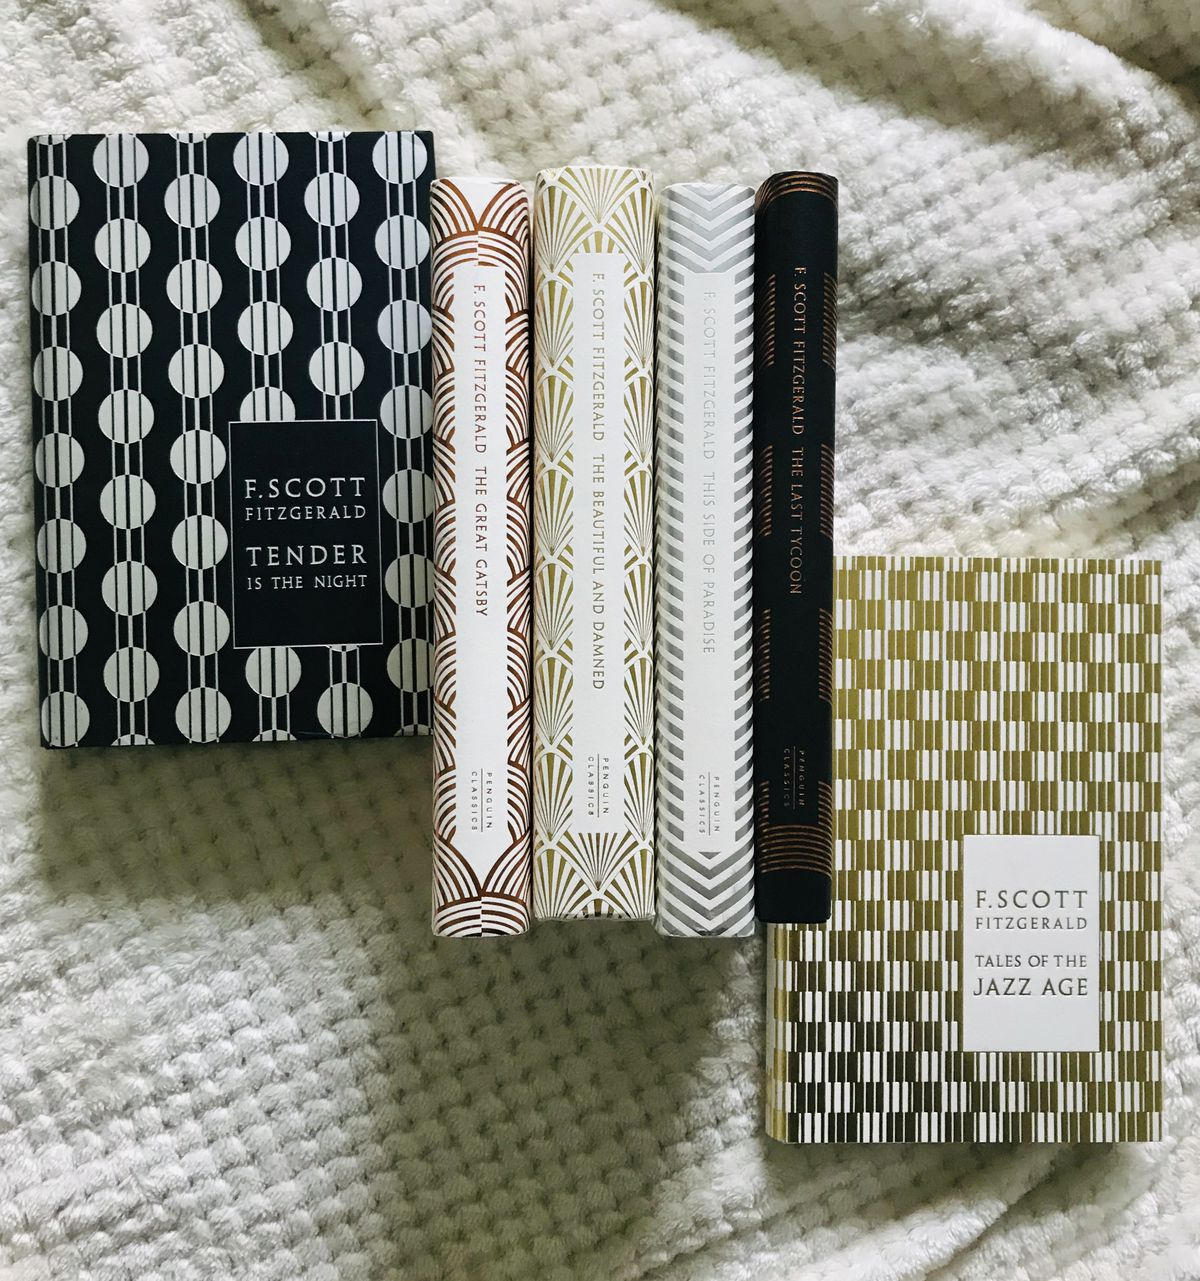 Books with metallic patterned covers sit on a bed.